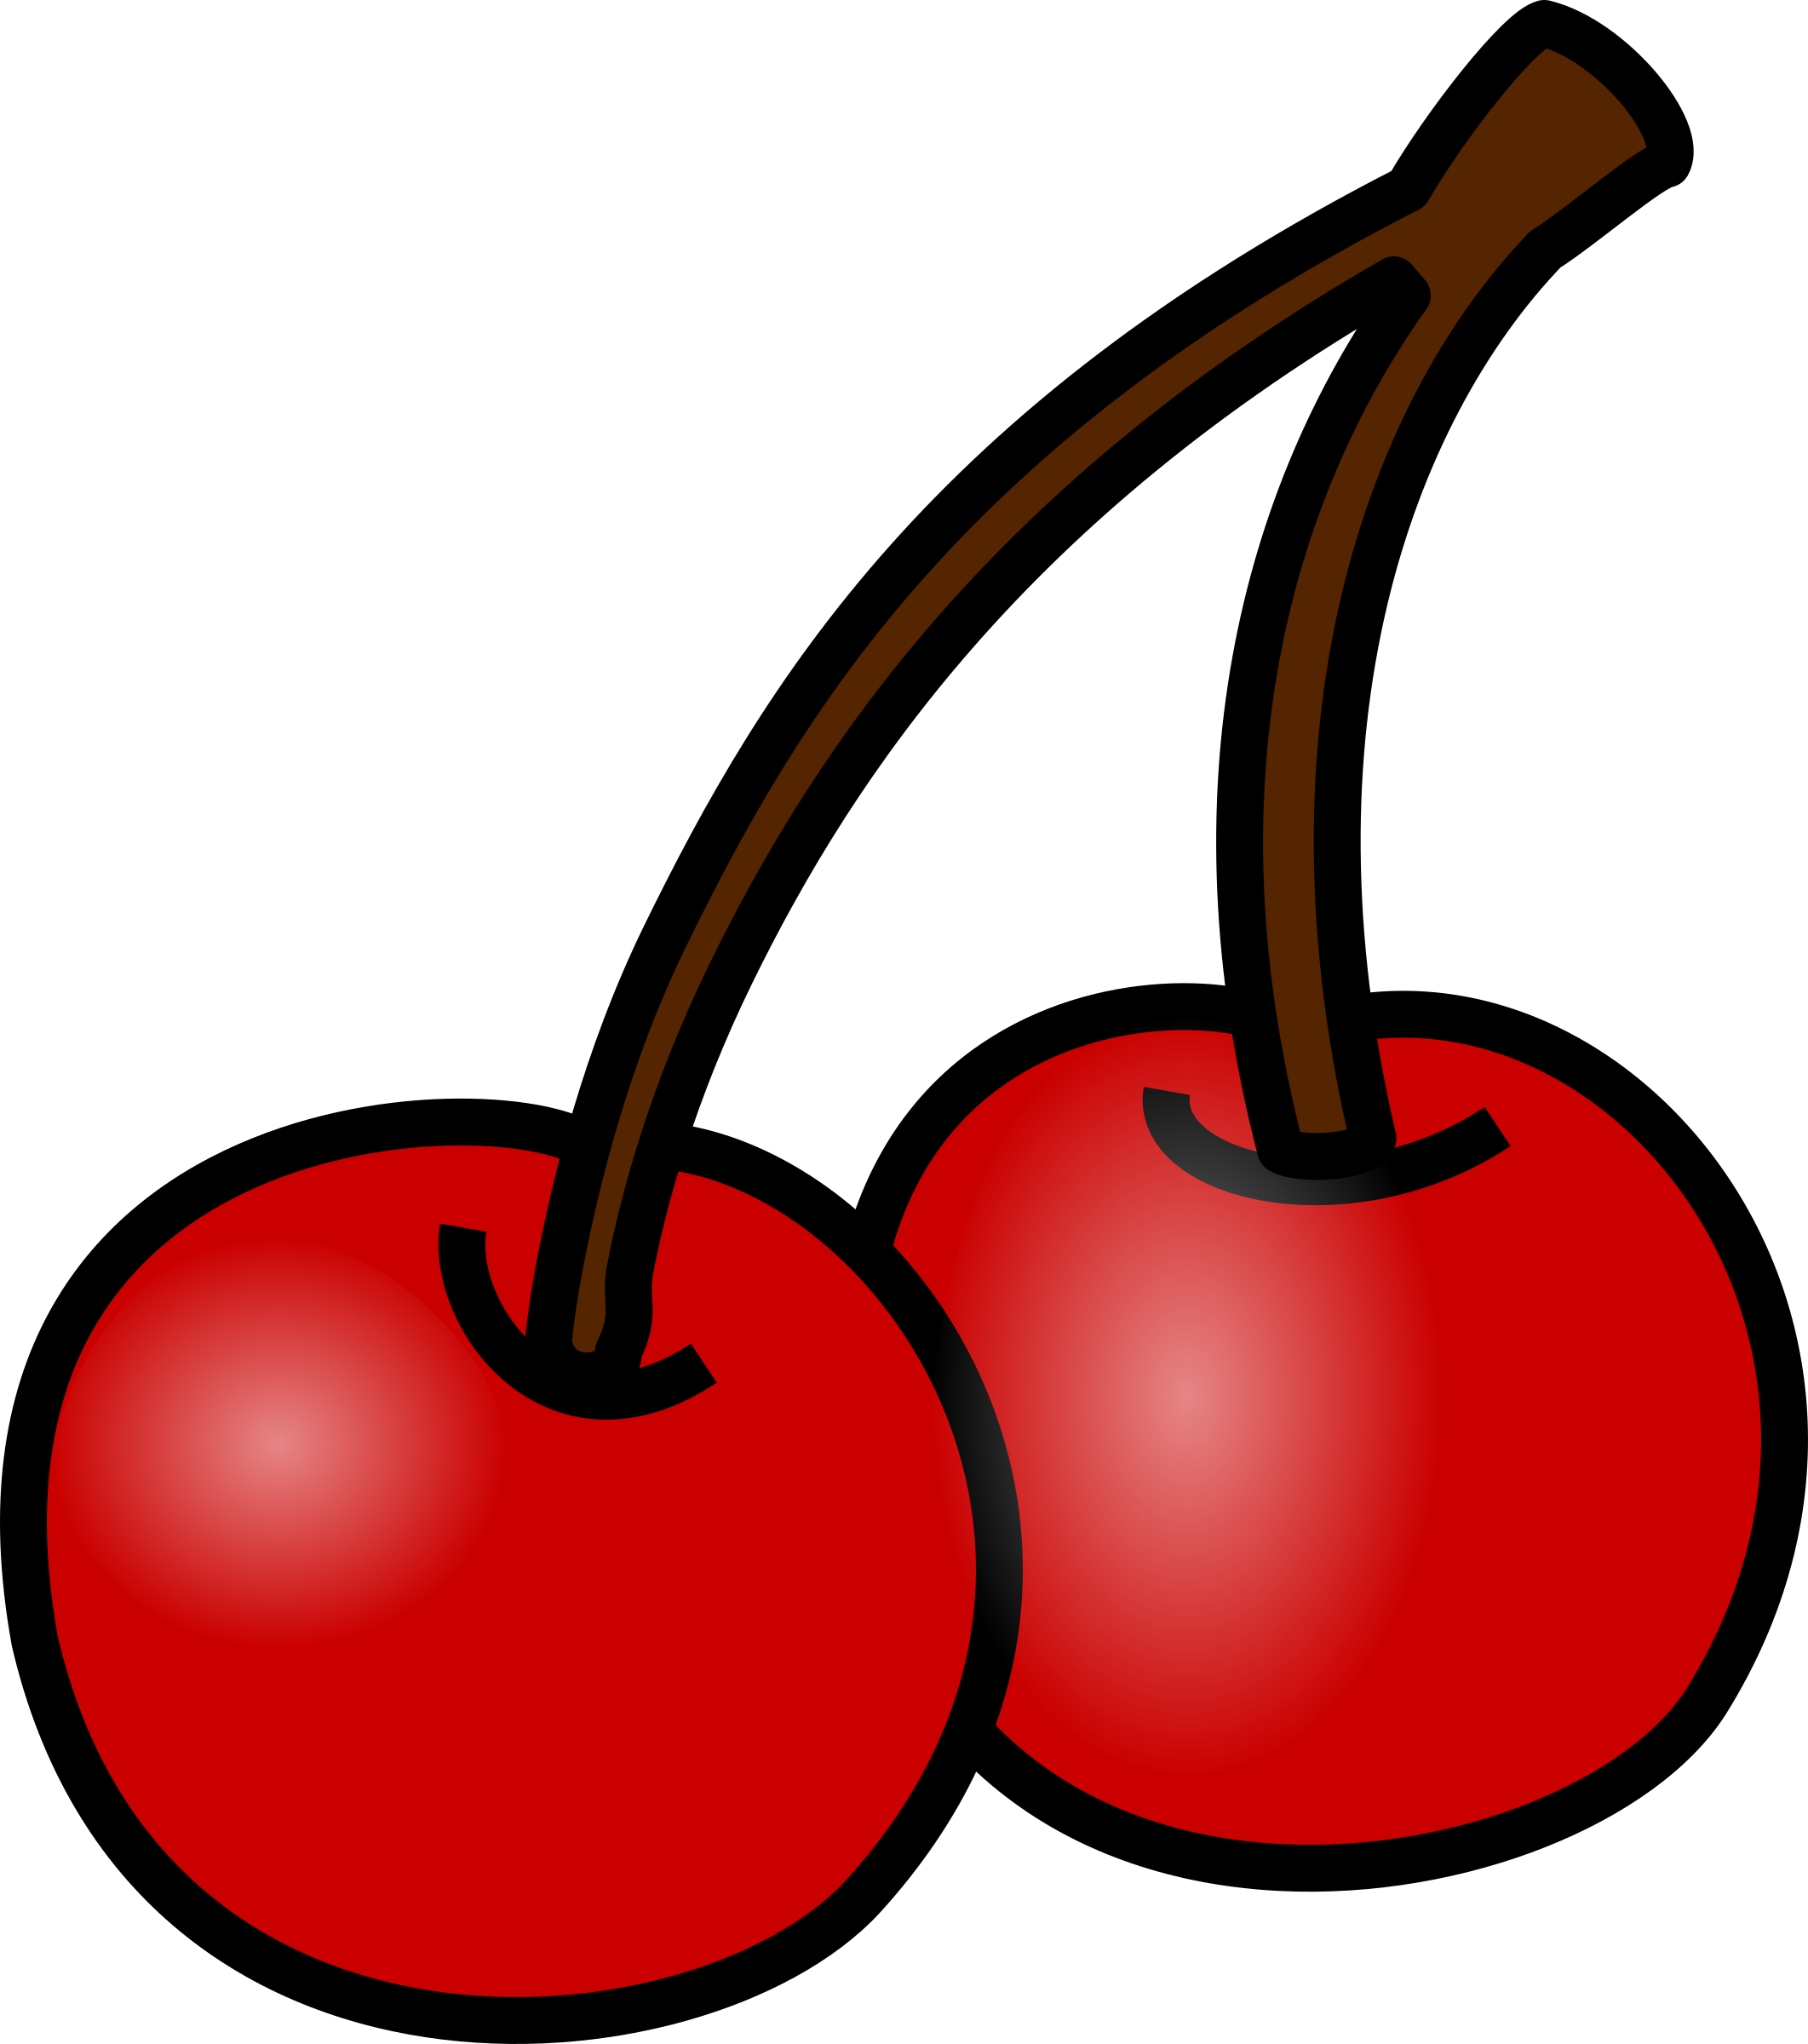 png black and white library Cherry big image png. Cherries clipart